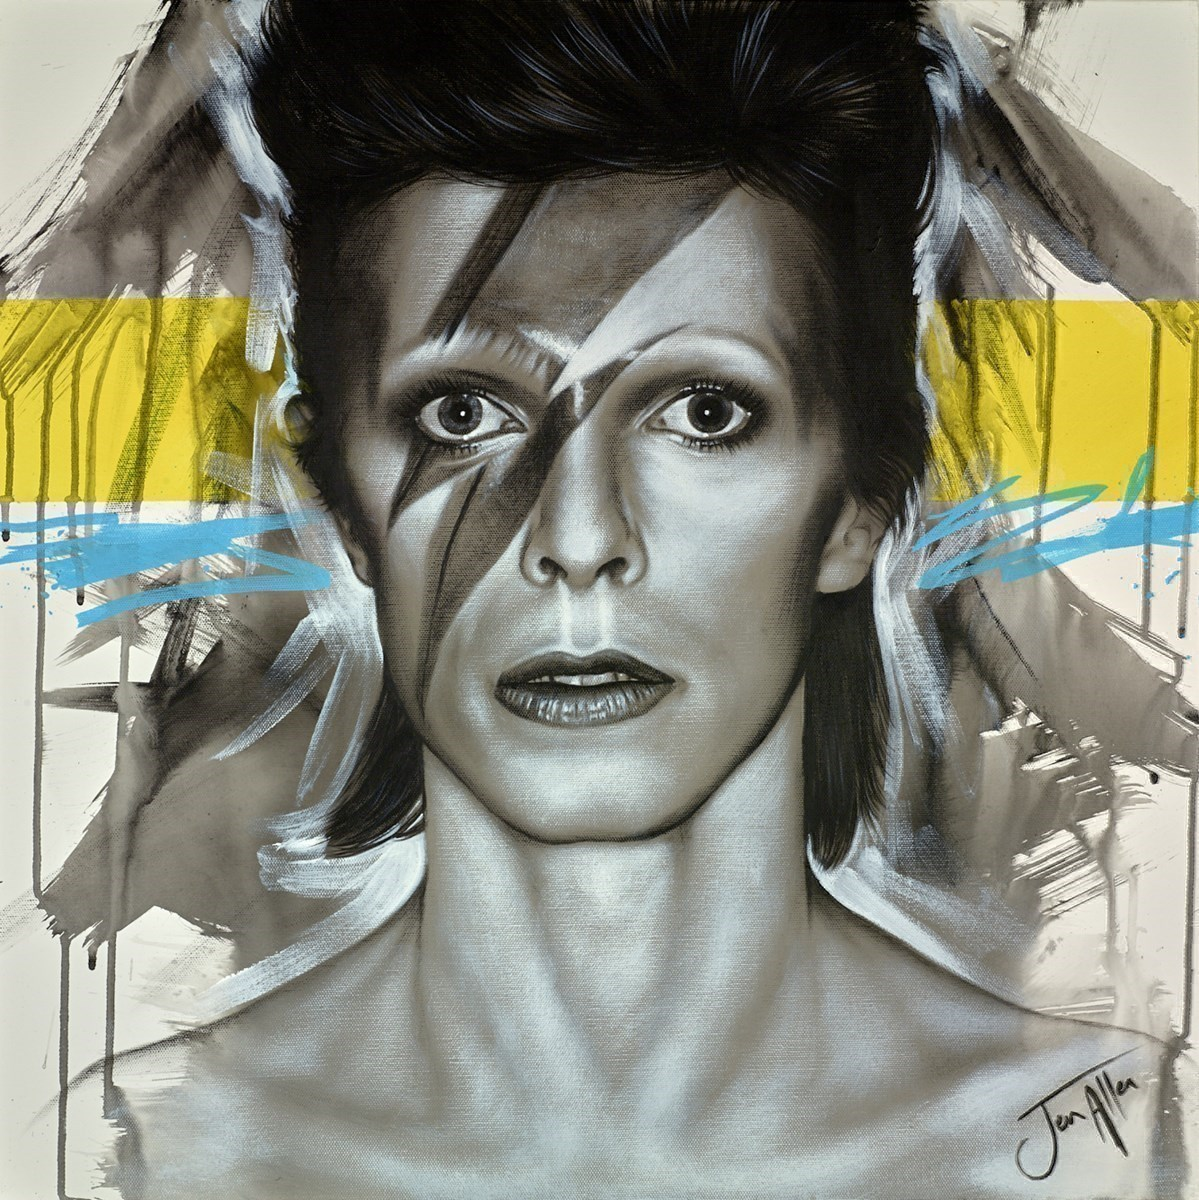 Bowie Aladdin Sane by Jen Allen -  sized 24x24 inches. Available from Whitewall Galleries